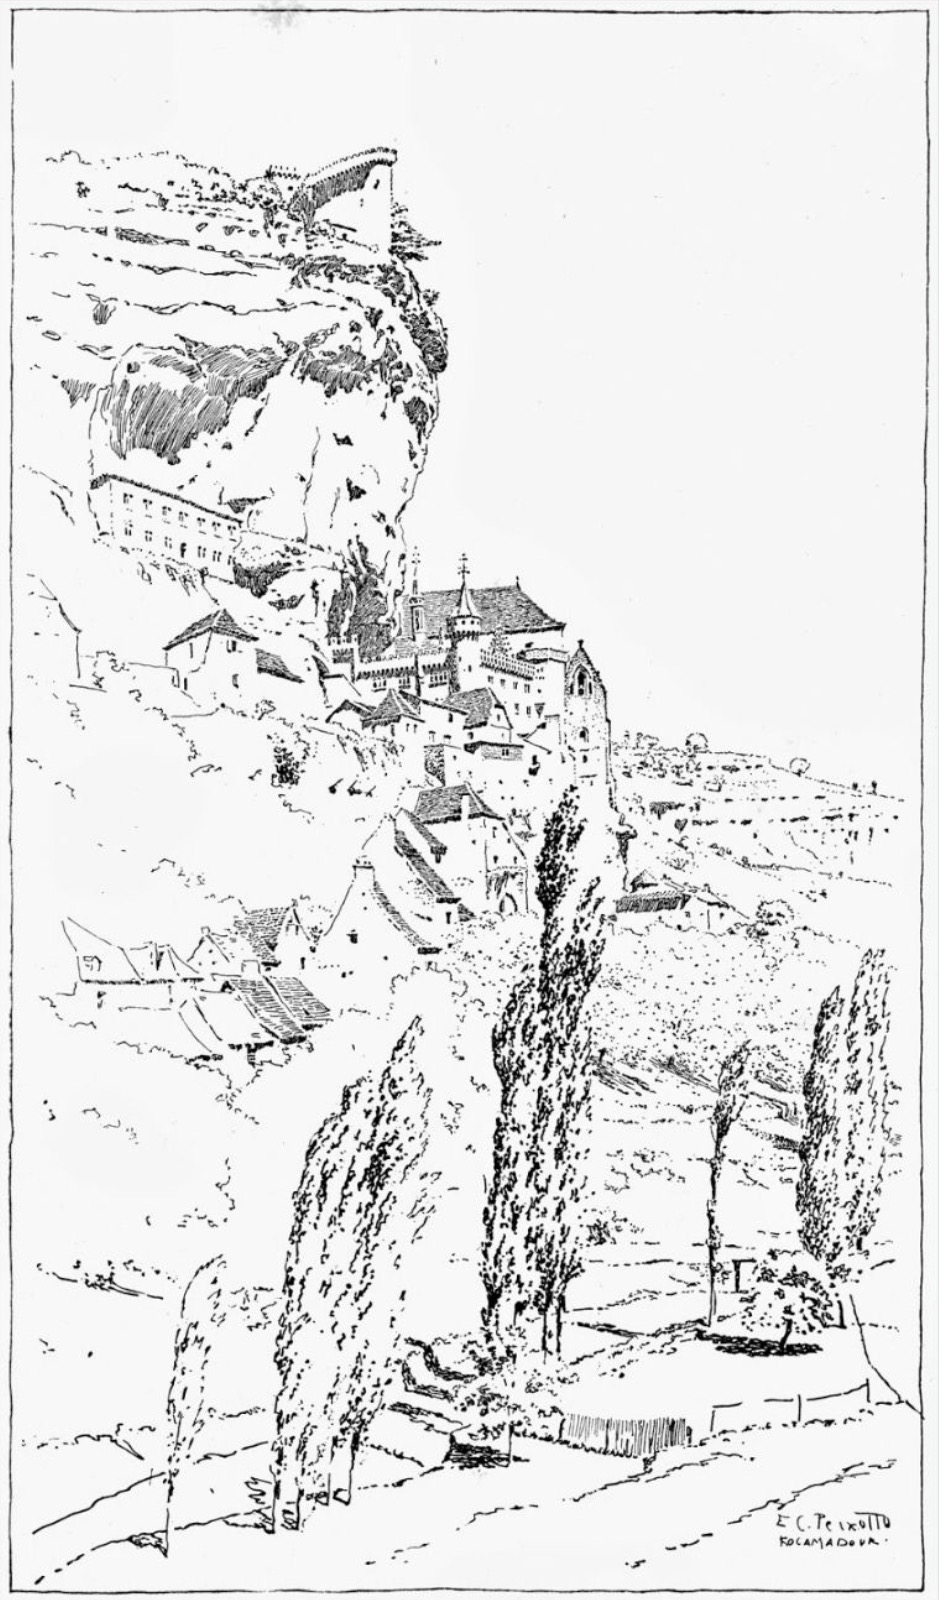 939x1600 Landscape drawing by E. C. Peixotto Landscape Drawings